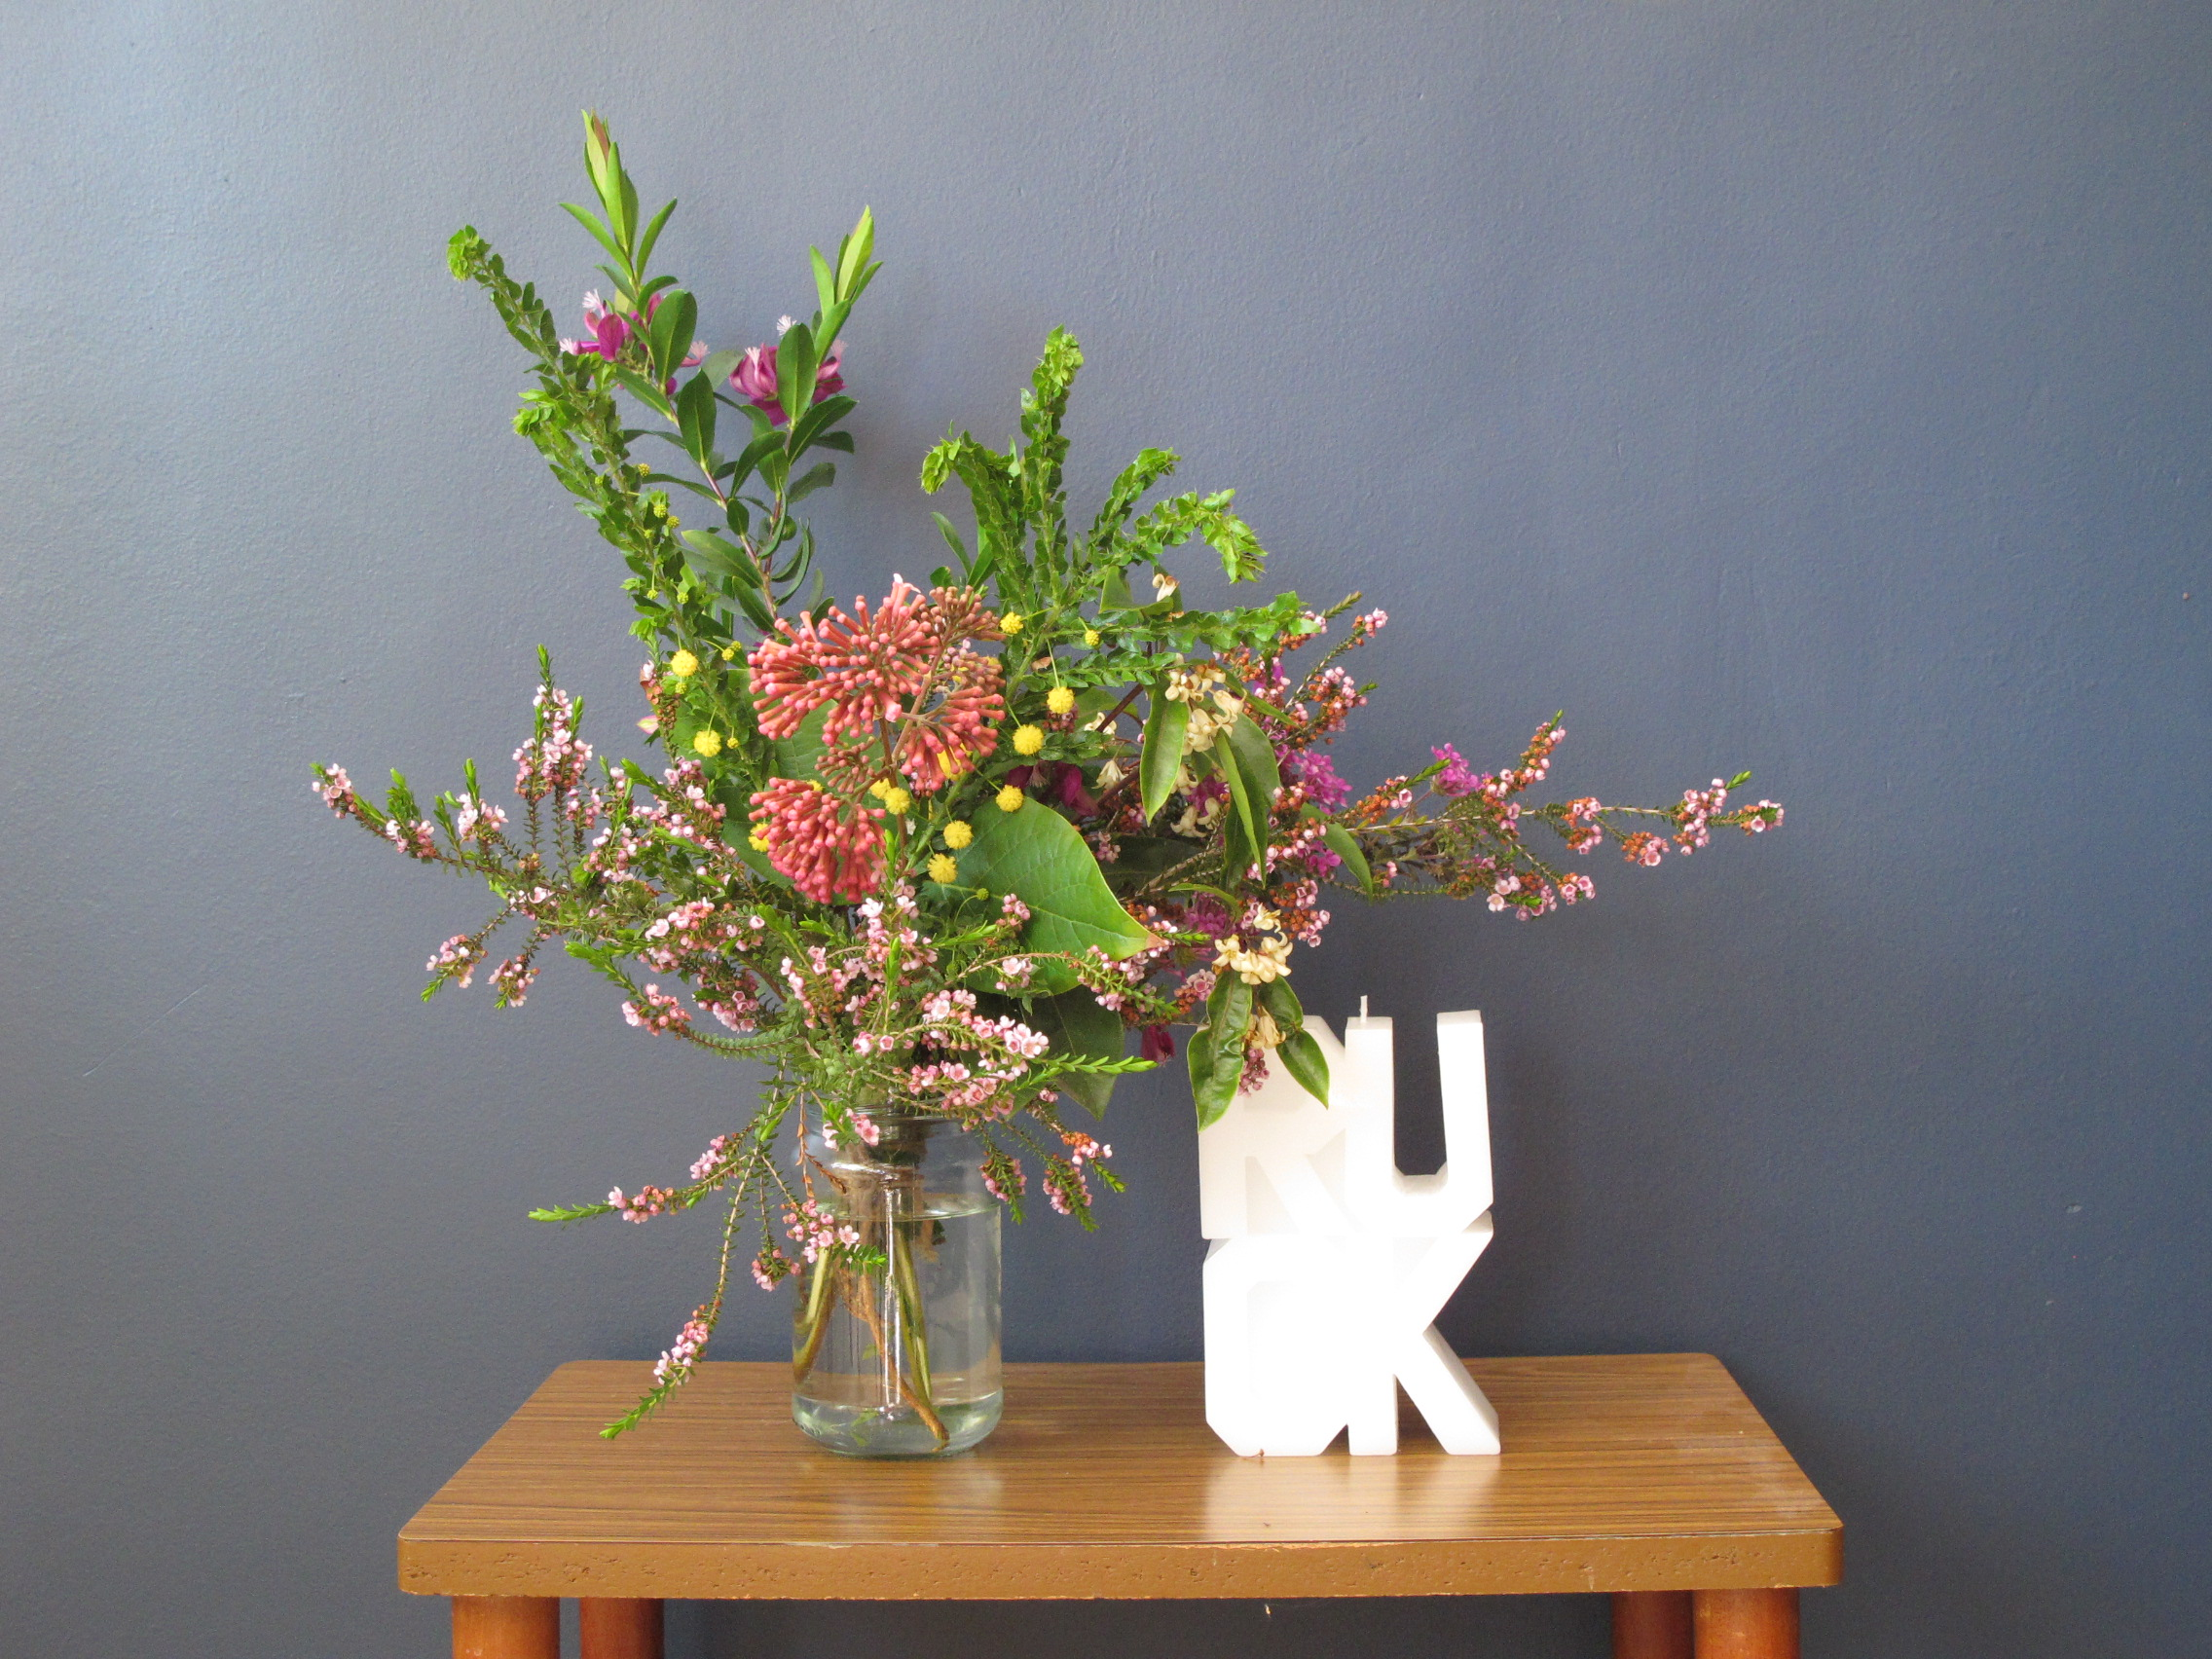 Flowers 'foraged' from St Kilda's backstreets: RUOK, 2010, Rose Nolan, edition 314/1000.